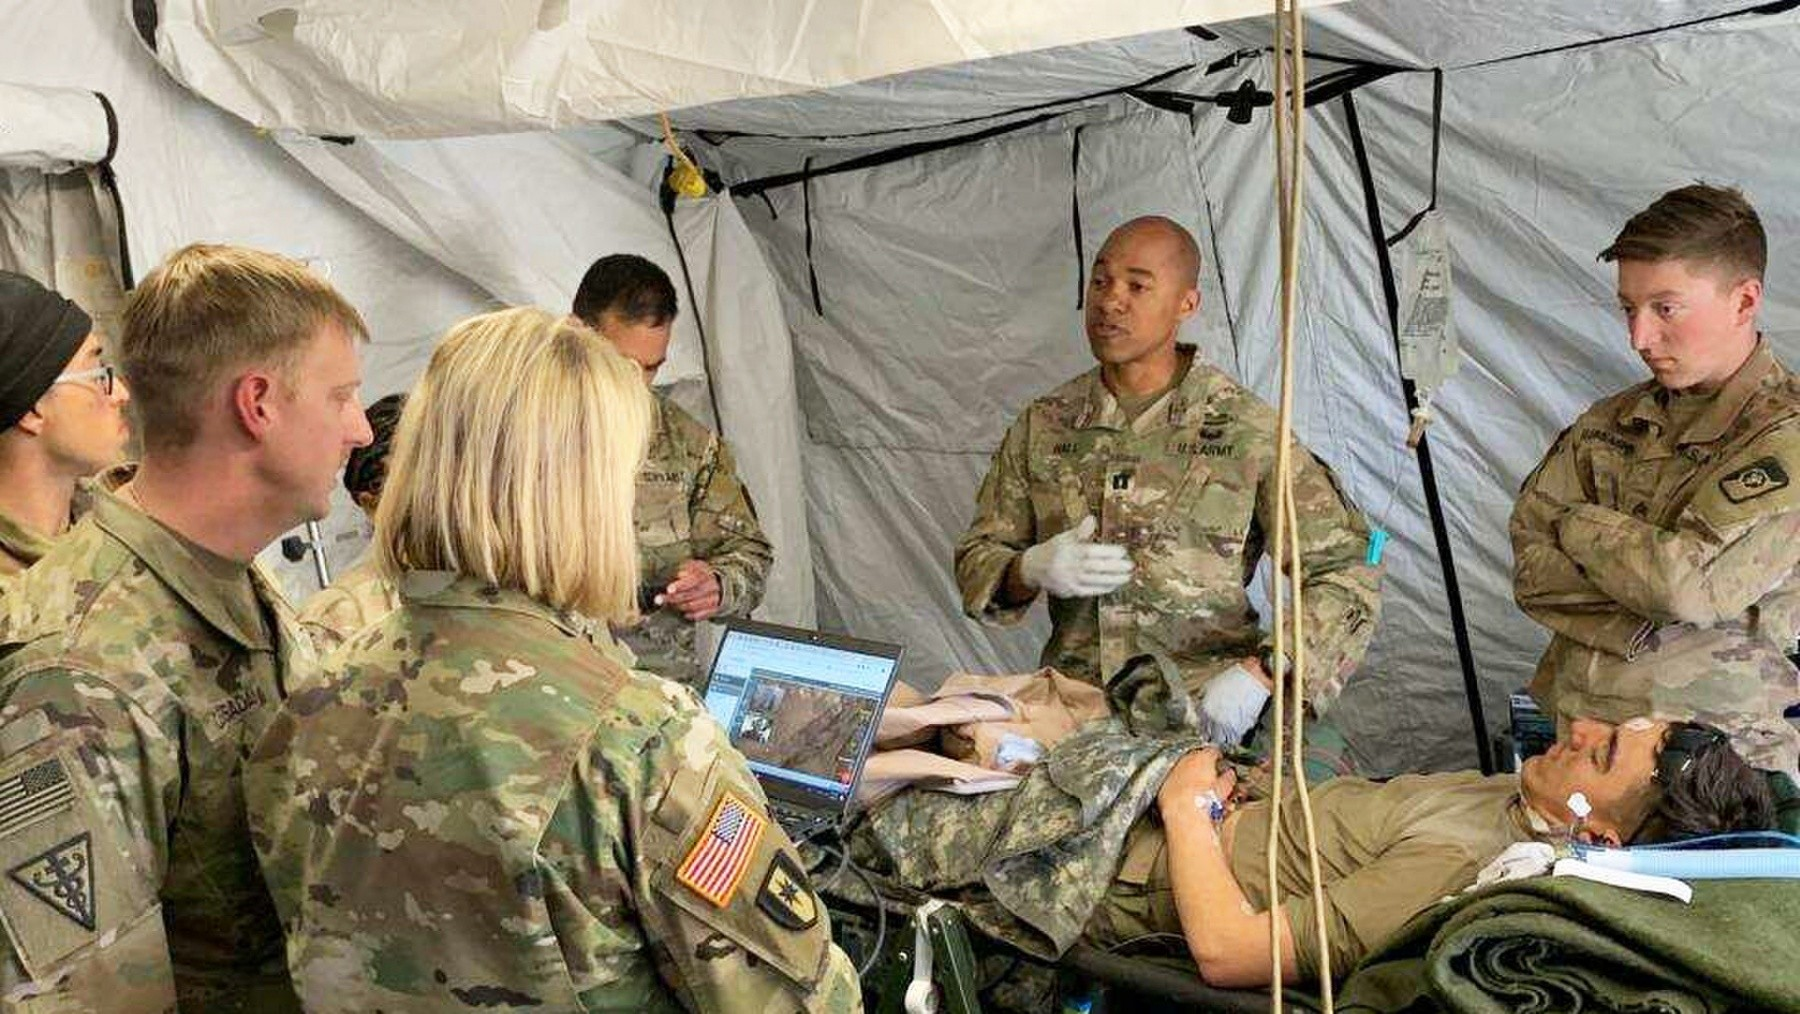 Medical personnel from Regional Health Command-Pacific, Madigan Army Medical Center, Telemedical Research for Operational Support, the 250th Forward Surgical Team and other medical assets utilize virtual health capabilities to treat a simulated patient during the recent Joint Warfighting Assessment April 23 to May 10 in Yakima, Washington. Regional Health Command-Pacific tested several virtual health capabilities during JWA 19. (Photo Credit: Courtesy Photo)